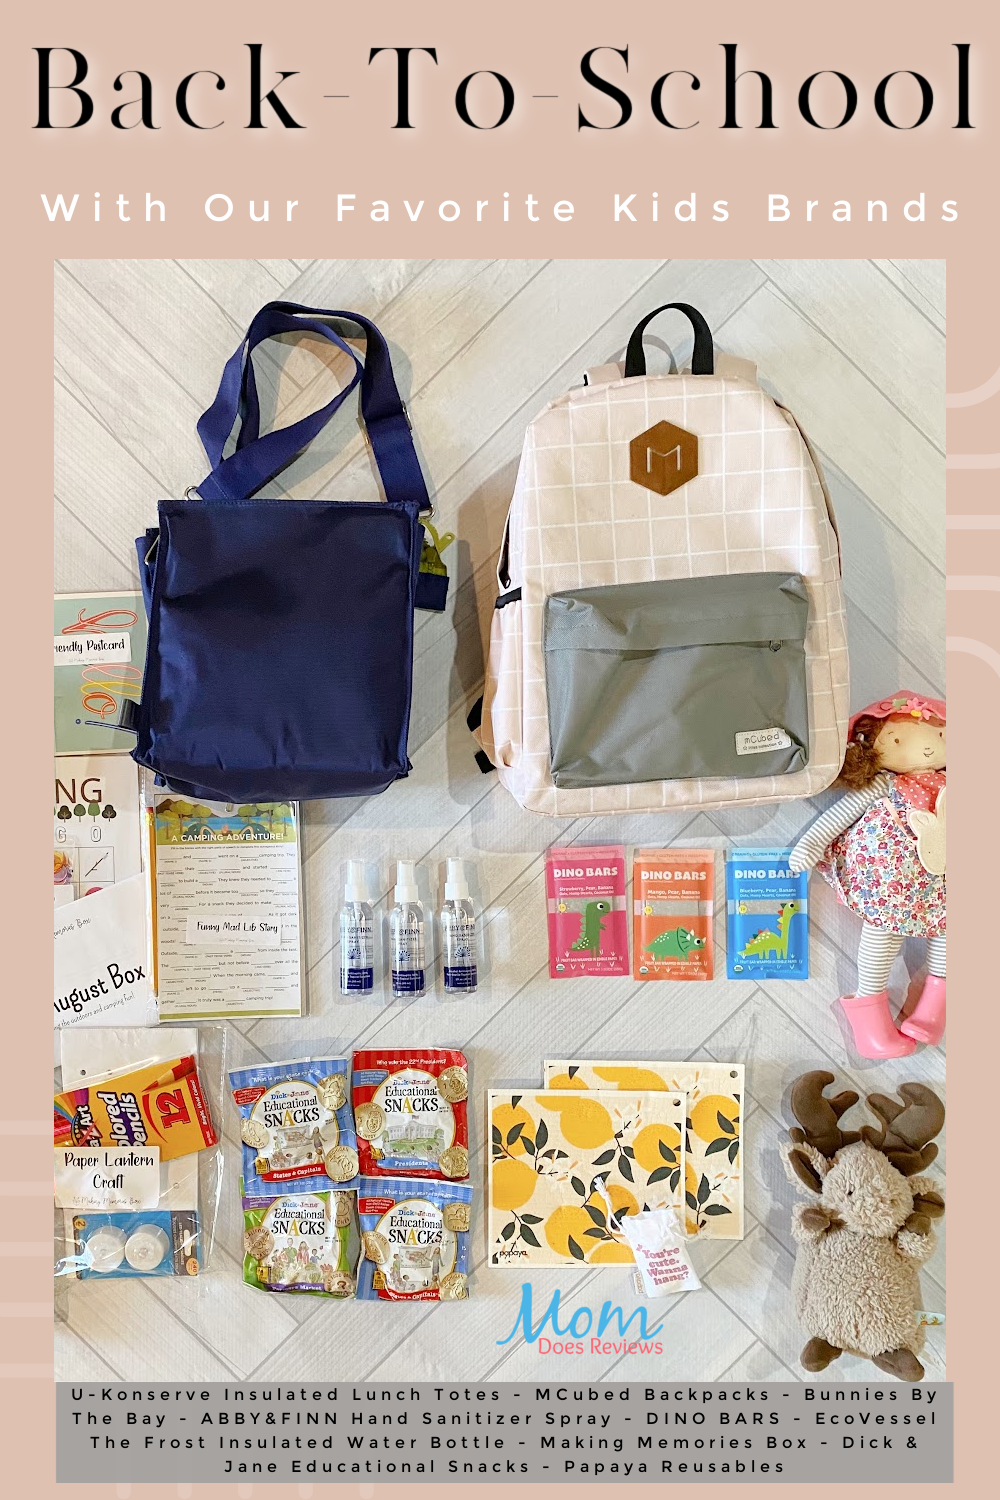 Get back to school with our favorite kids brands